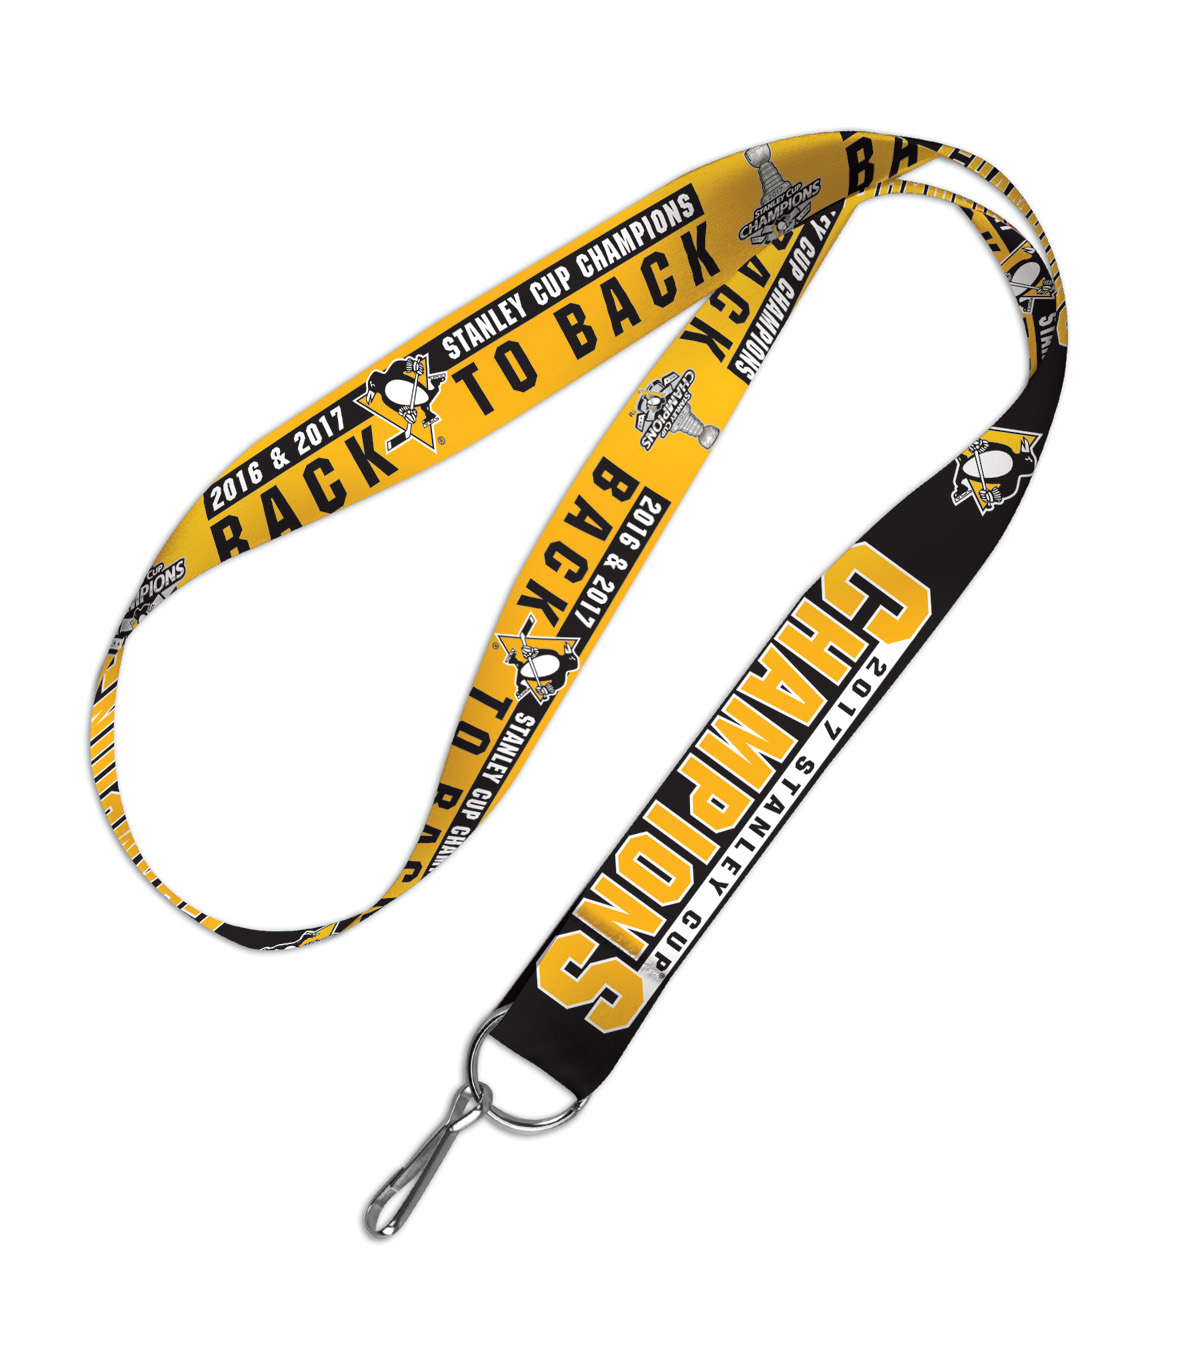 Pittsburgh Penguins 2016 & 2017 Stanley Cup Champions Lanyard